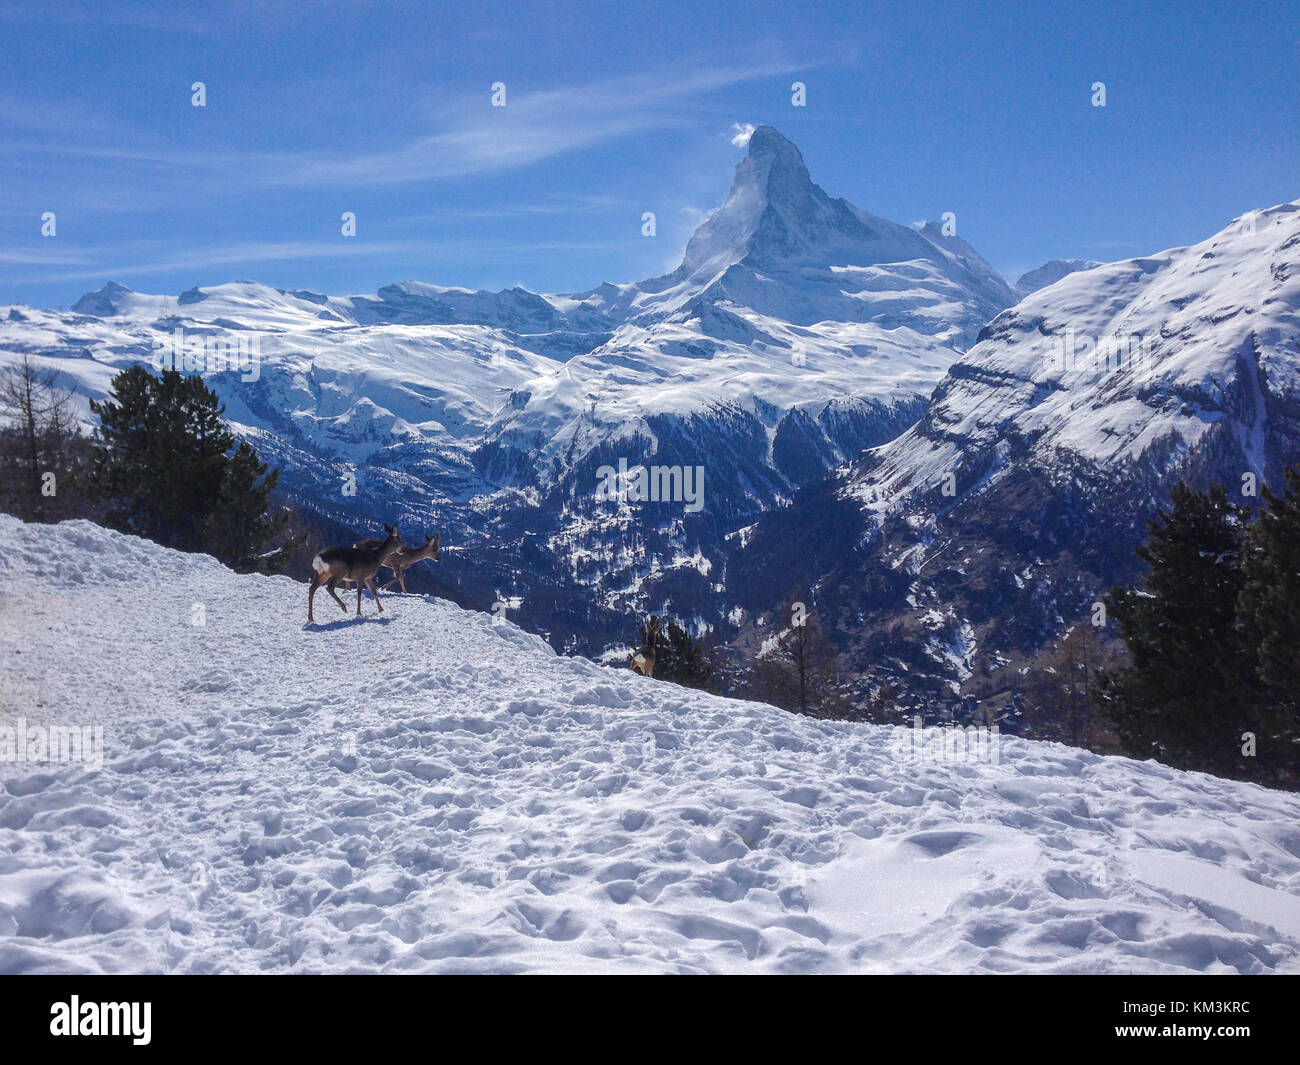 Panoramic view of Matterhorn with two deers seen from Tufteren station - Stock Image